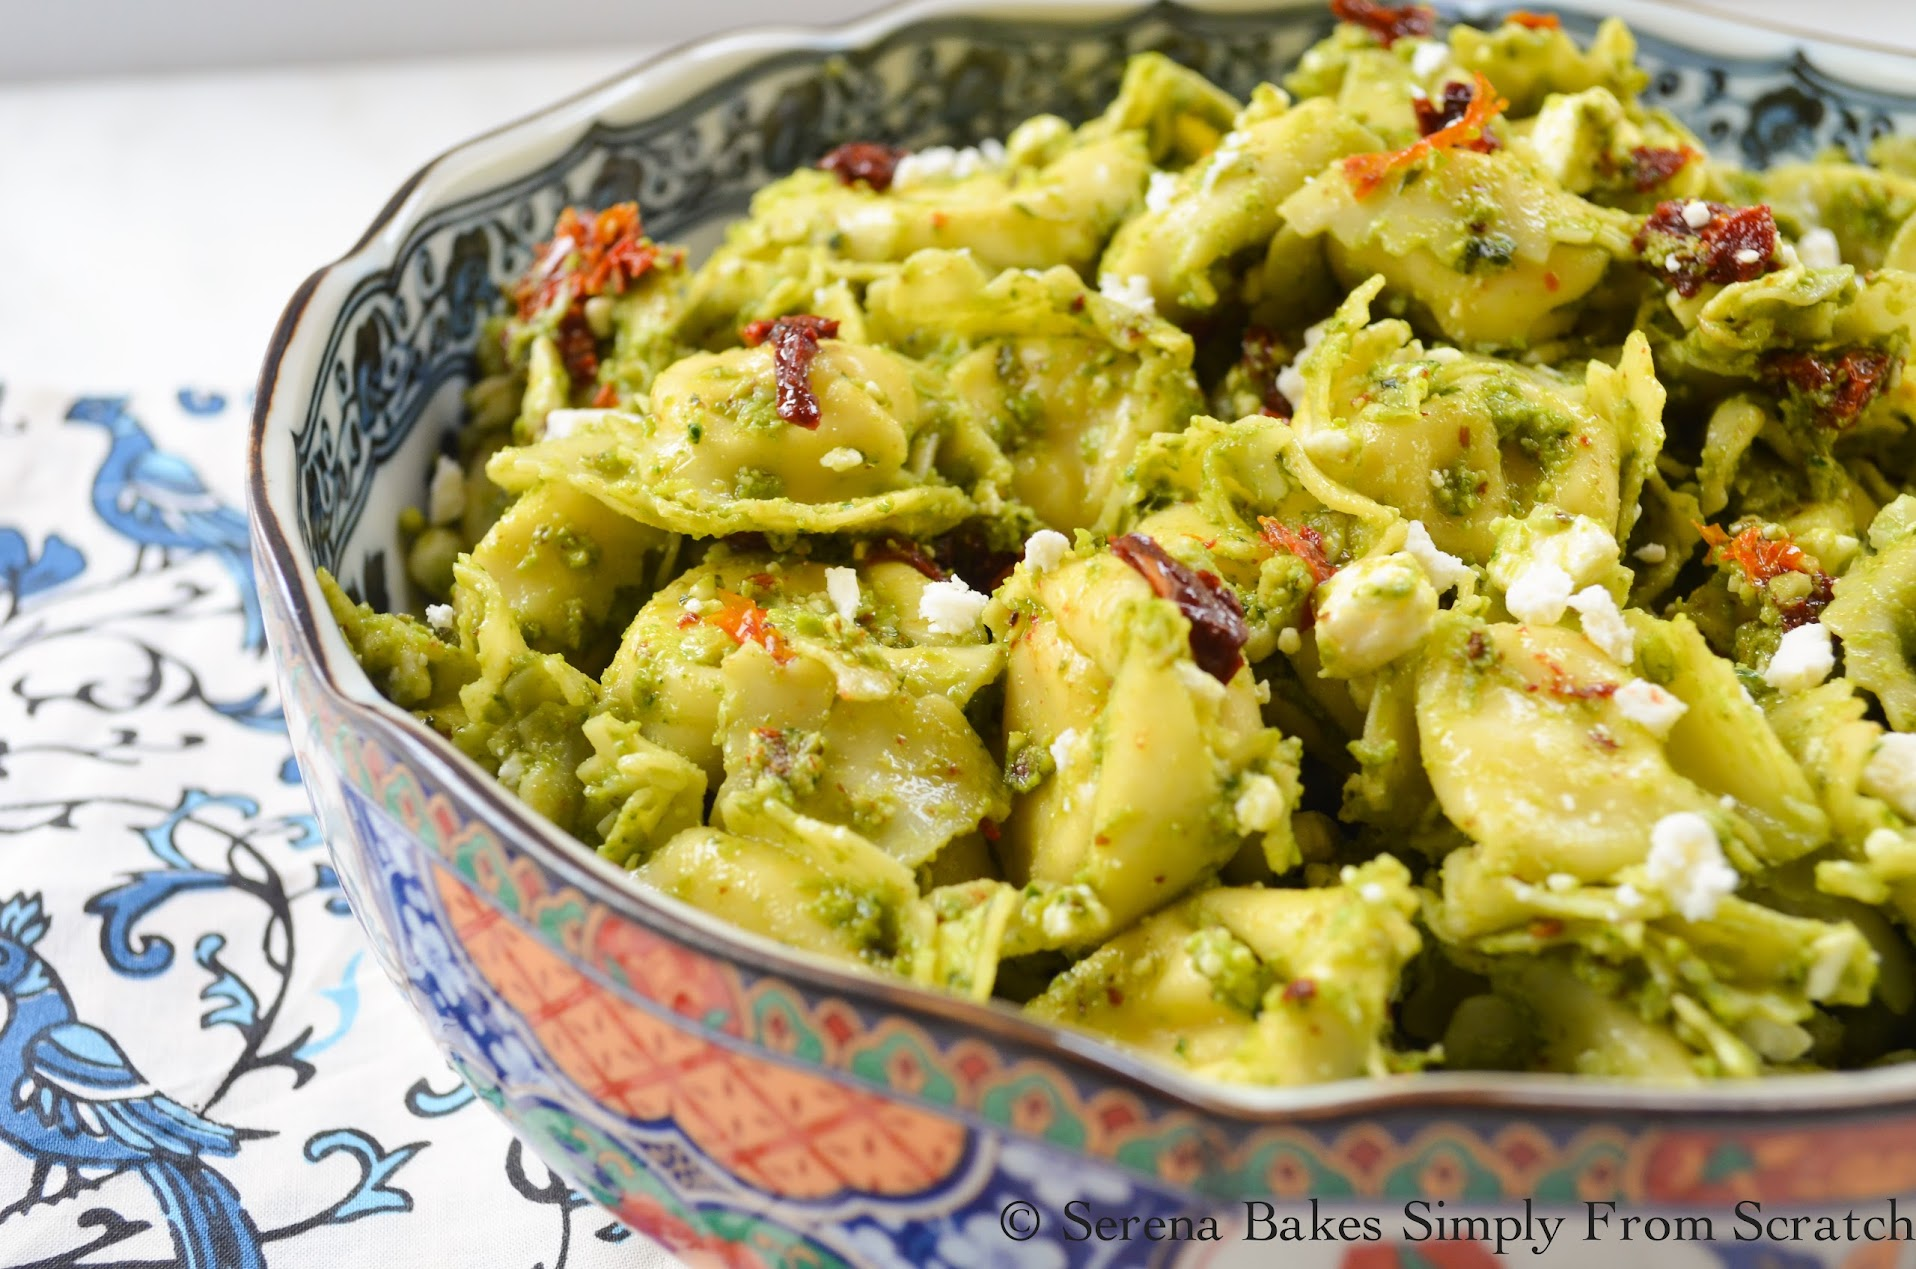 Tortellini Pesto Salad with Sun-dried Tomatoes and Feta